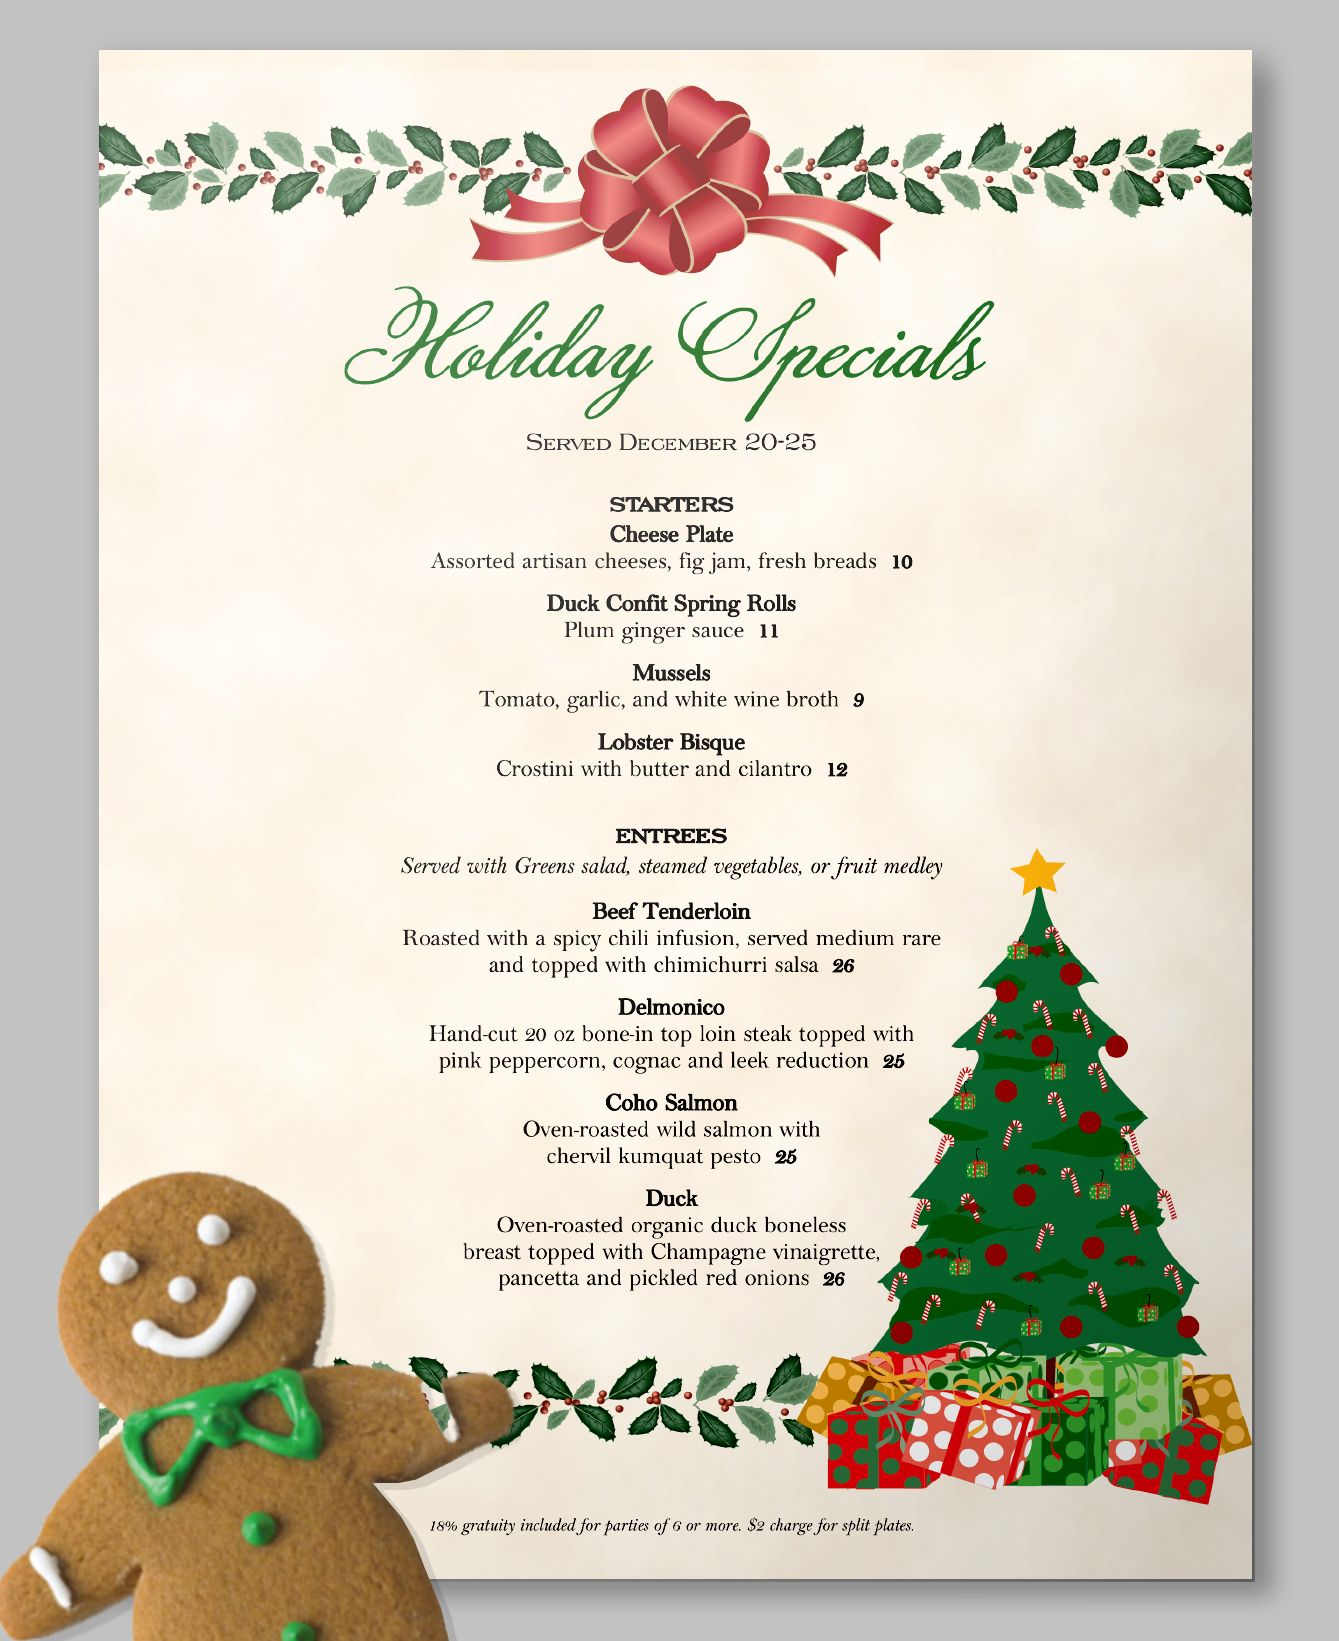 10 out of 10 gingerbread people prefer a holly jolly menu template